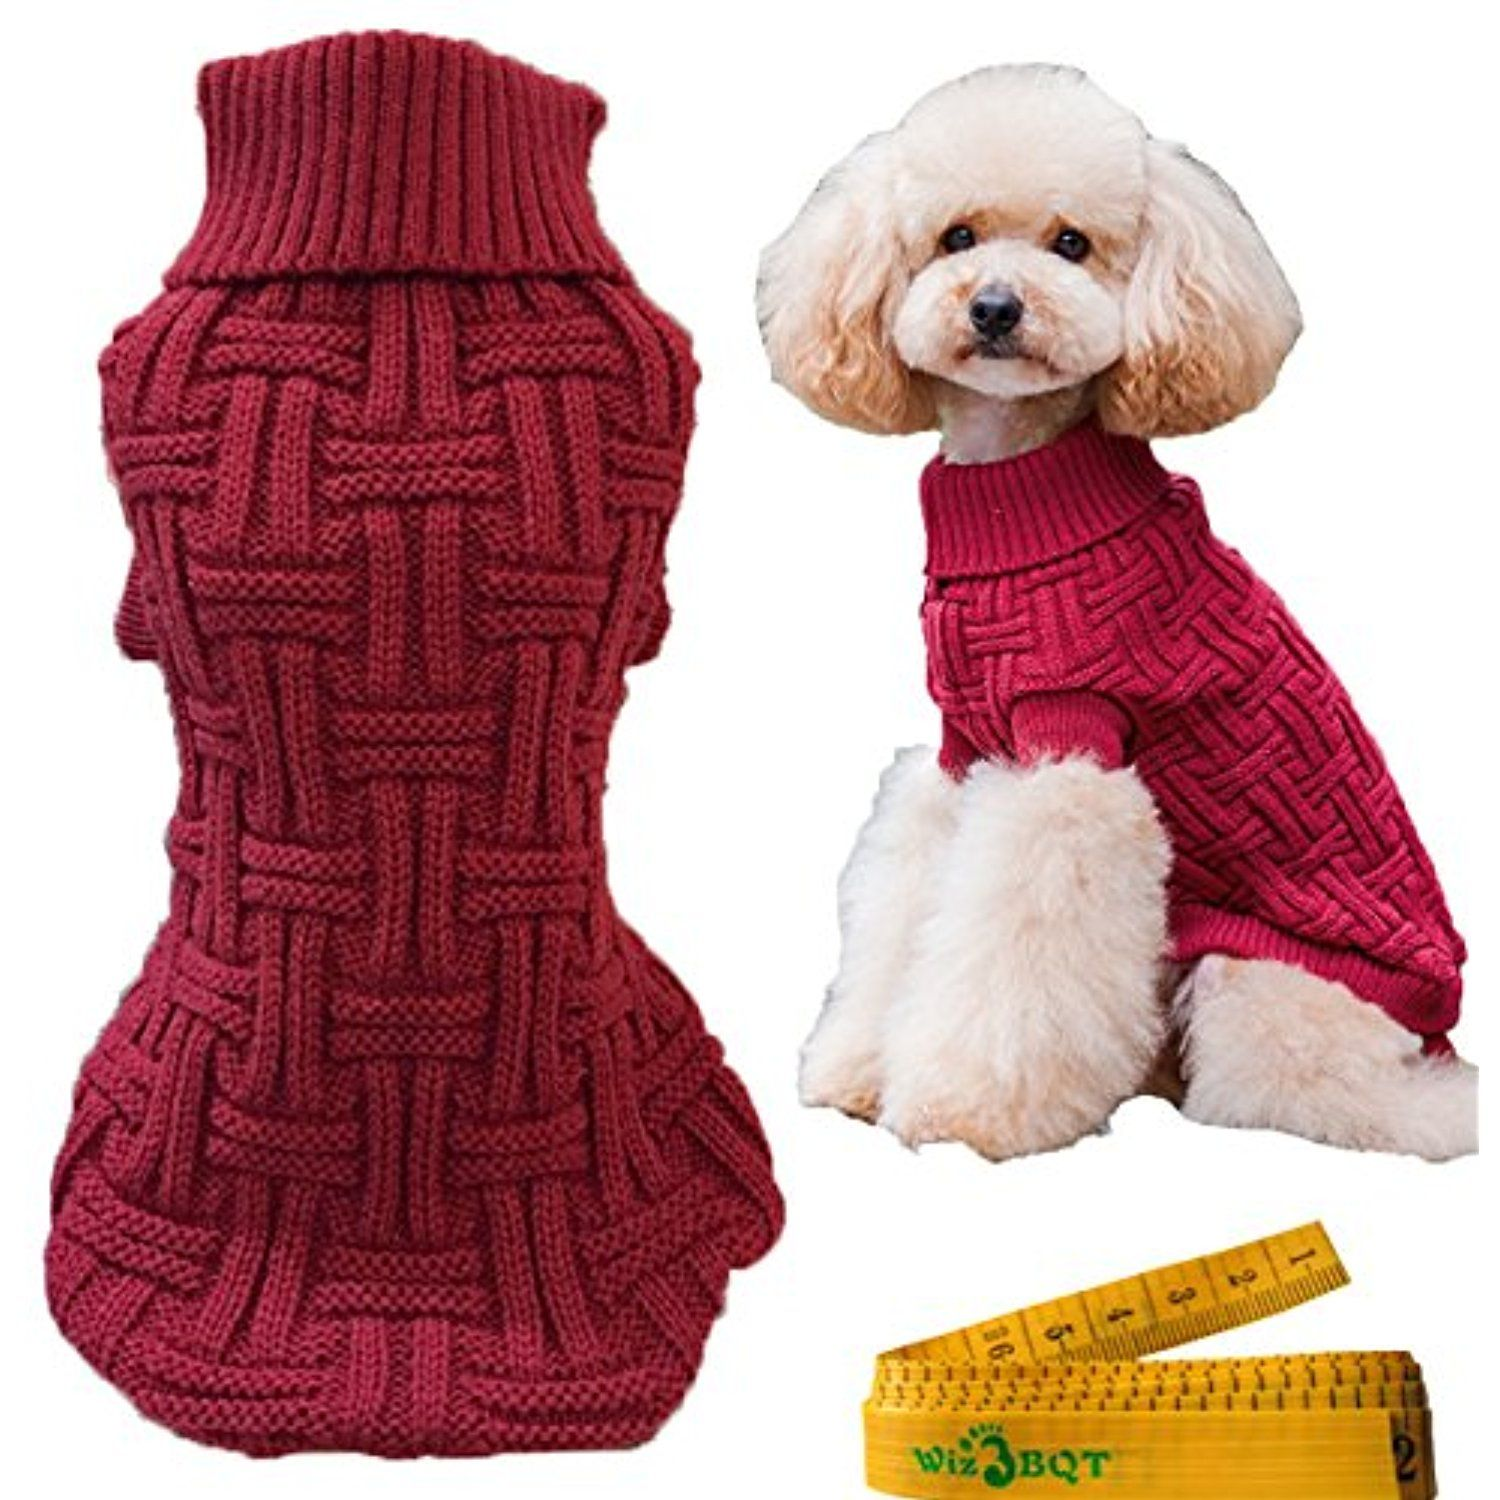 fee9ebd5fe Casual Elegant Knitted Cat Dog Pet Turtleneck Sweater Knitwear for Dogs  Cats Pets (B